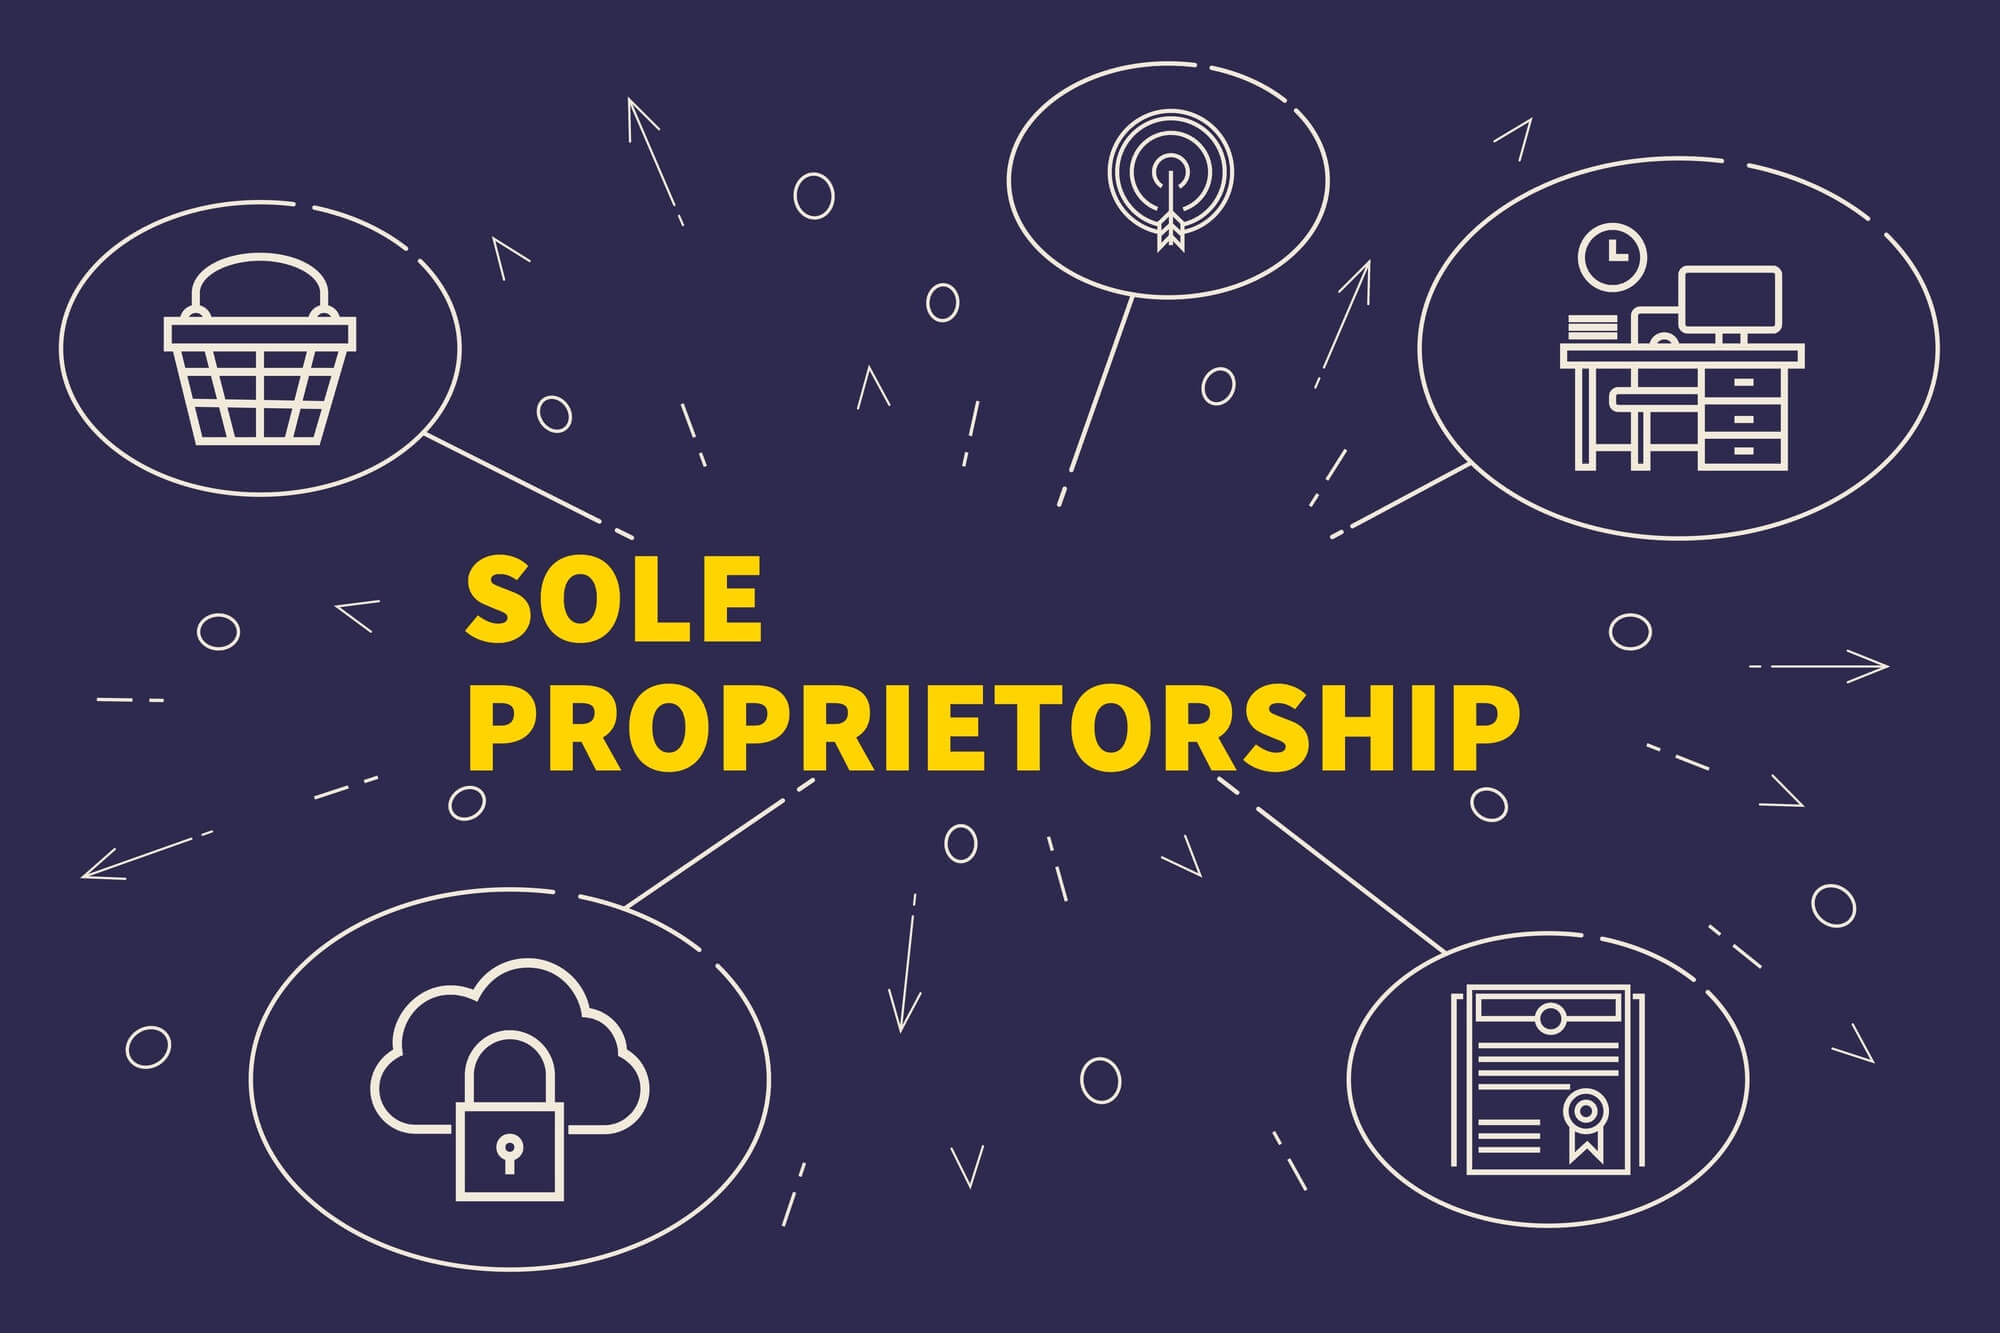 How to Register a Sole Proprietorship in Ontario